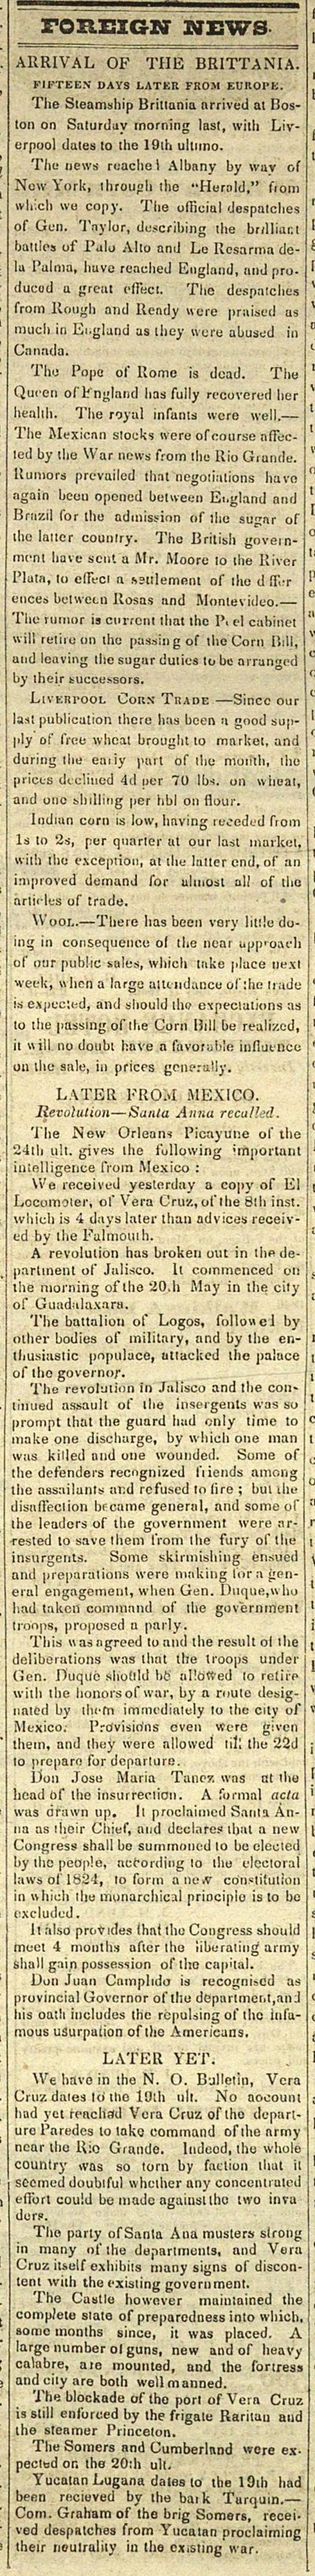 Foreign News: Arrival Of The Brittania: Fifteen Days Later F... image